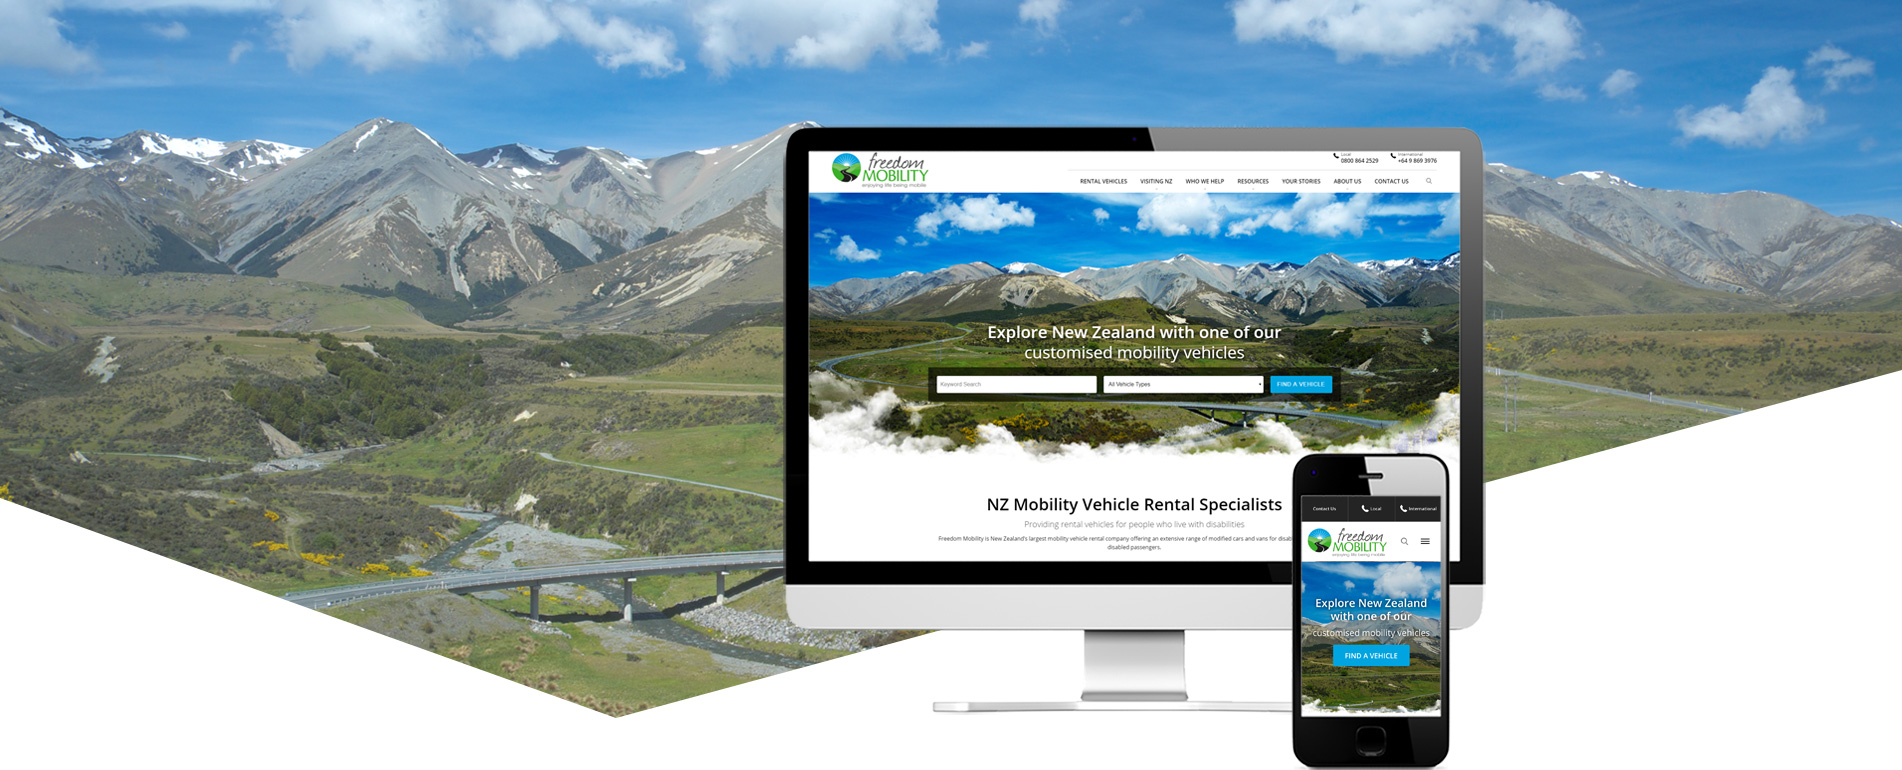 Freedom Mobility website design project banner - Freedom Mobility